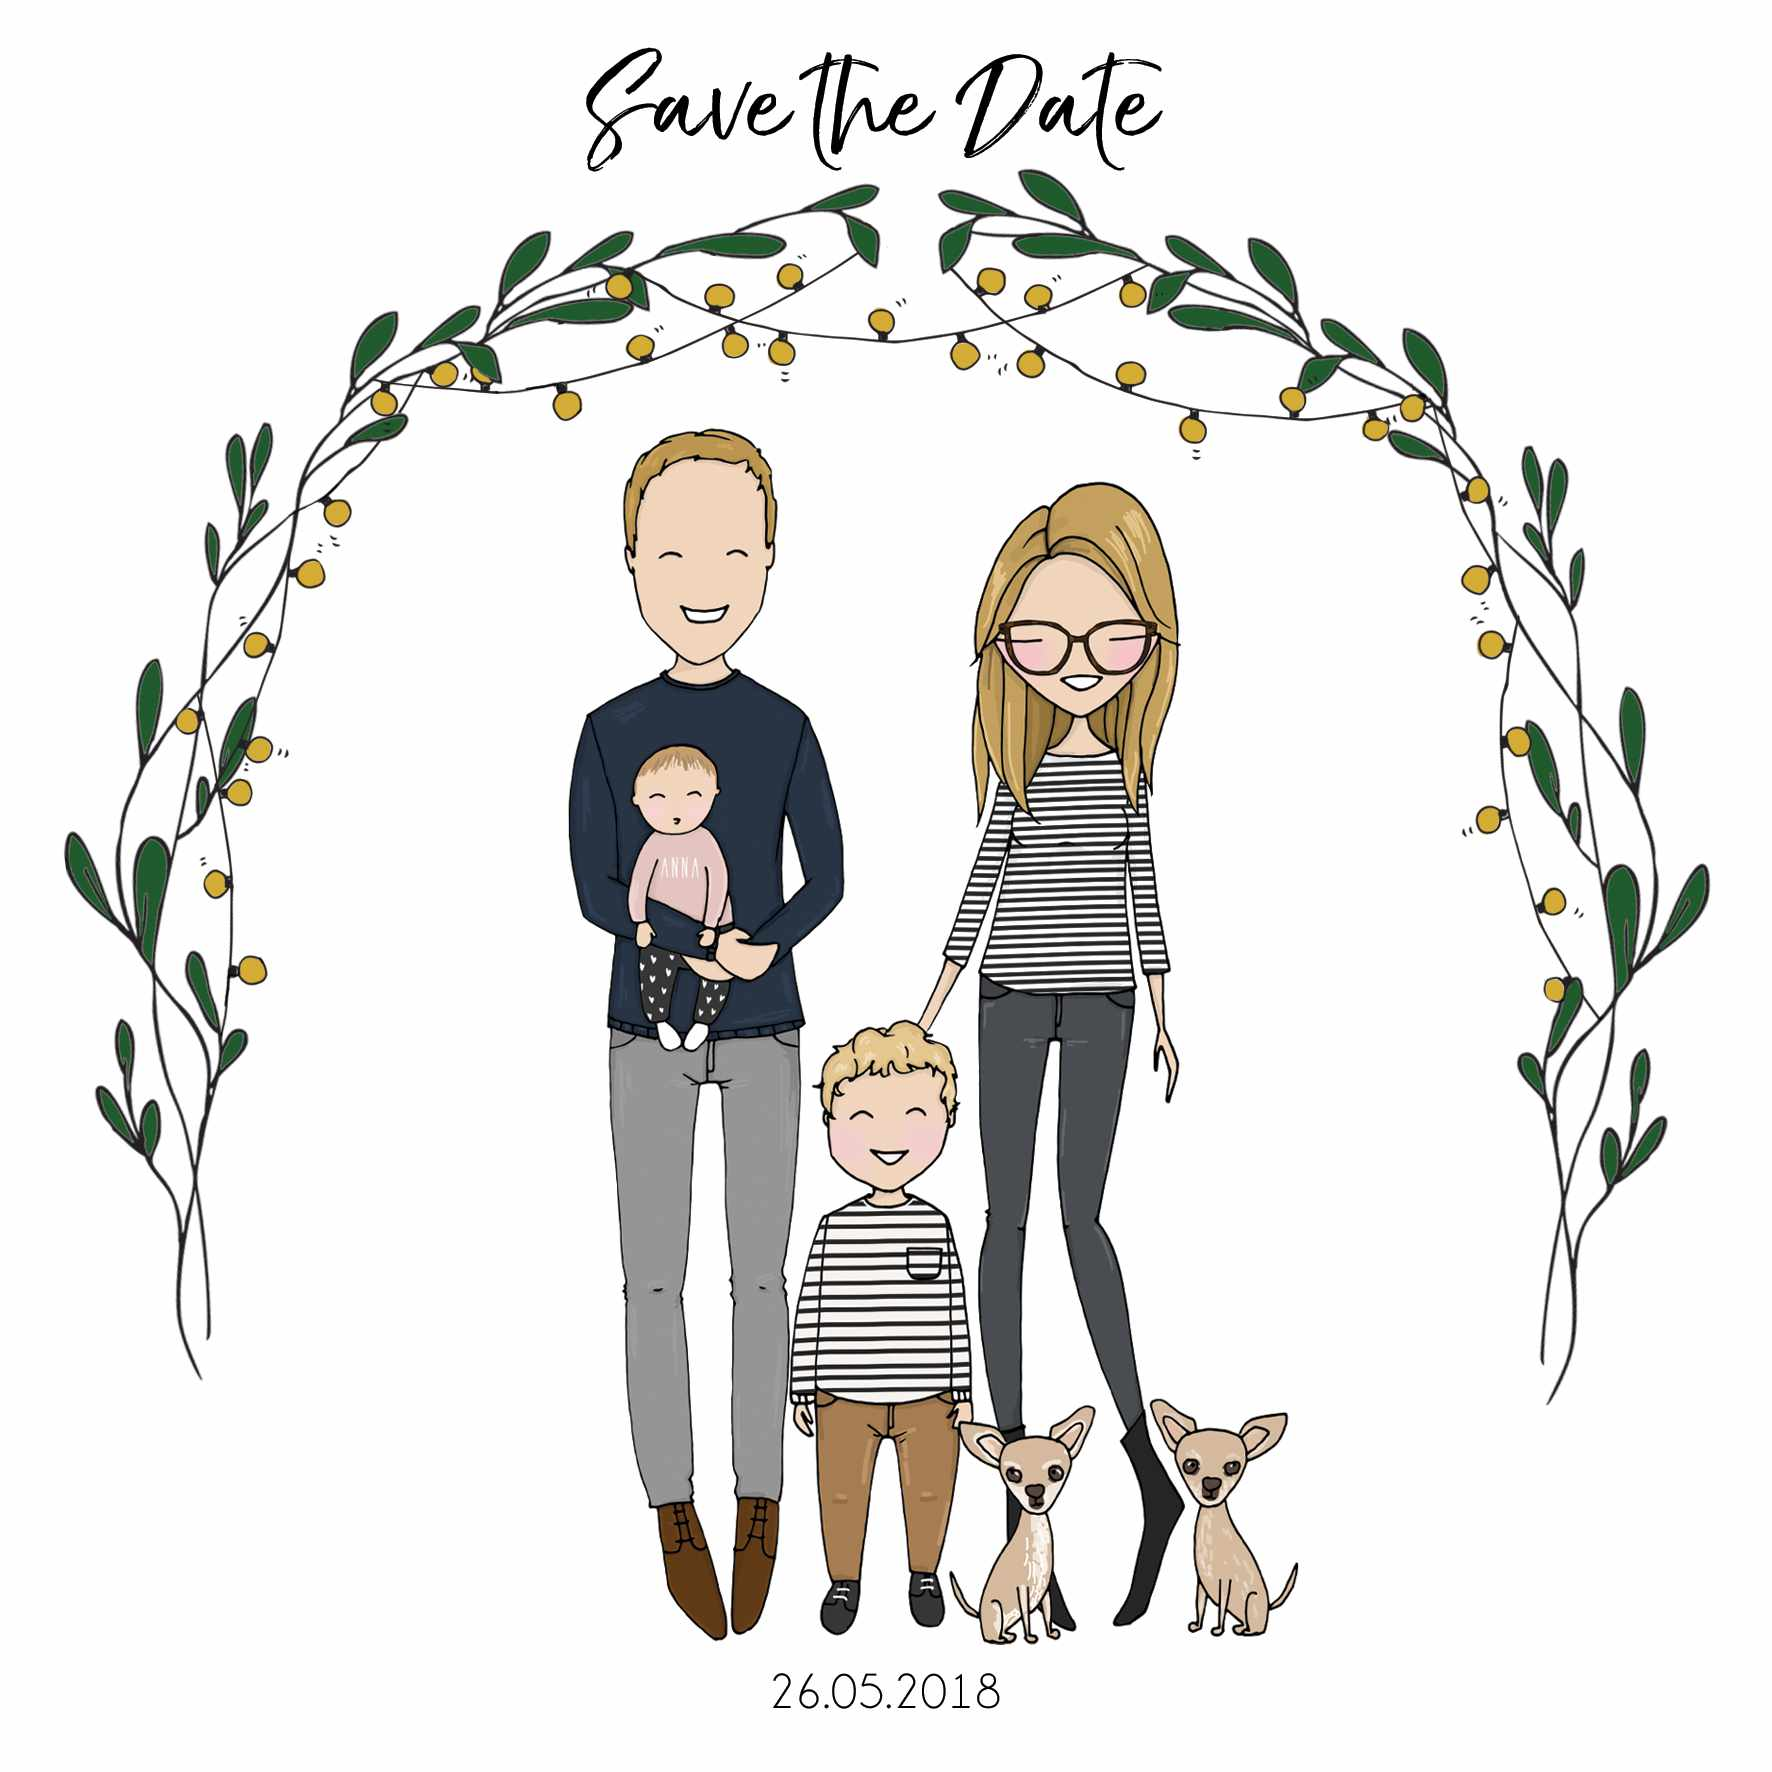 Save the date invite with cartoon drawings of the family including two children and two dogs